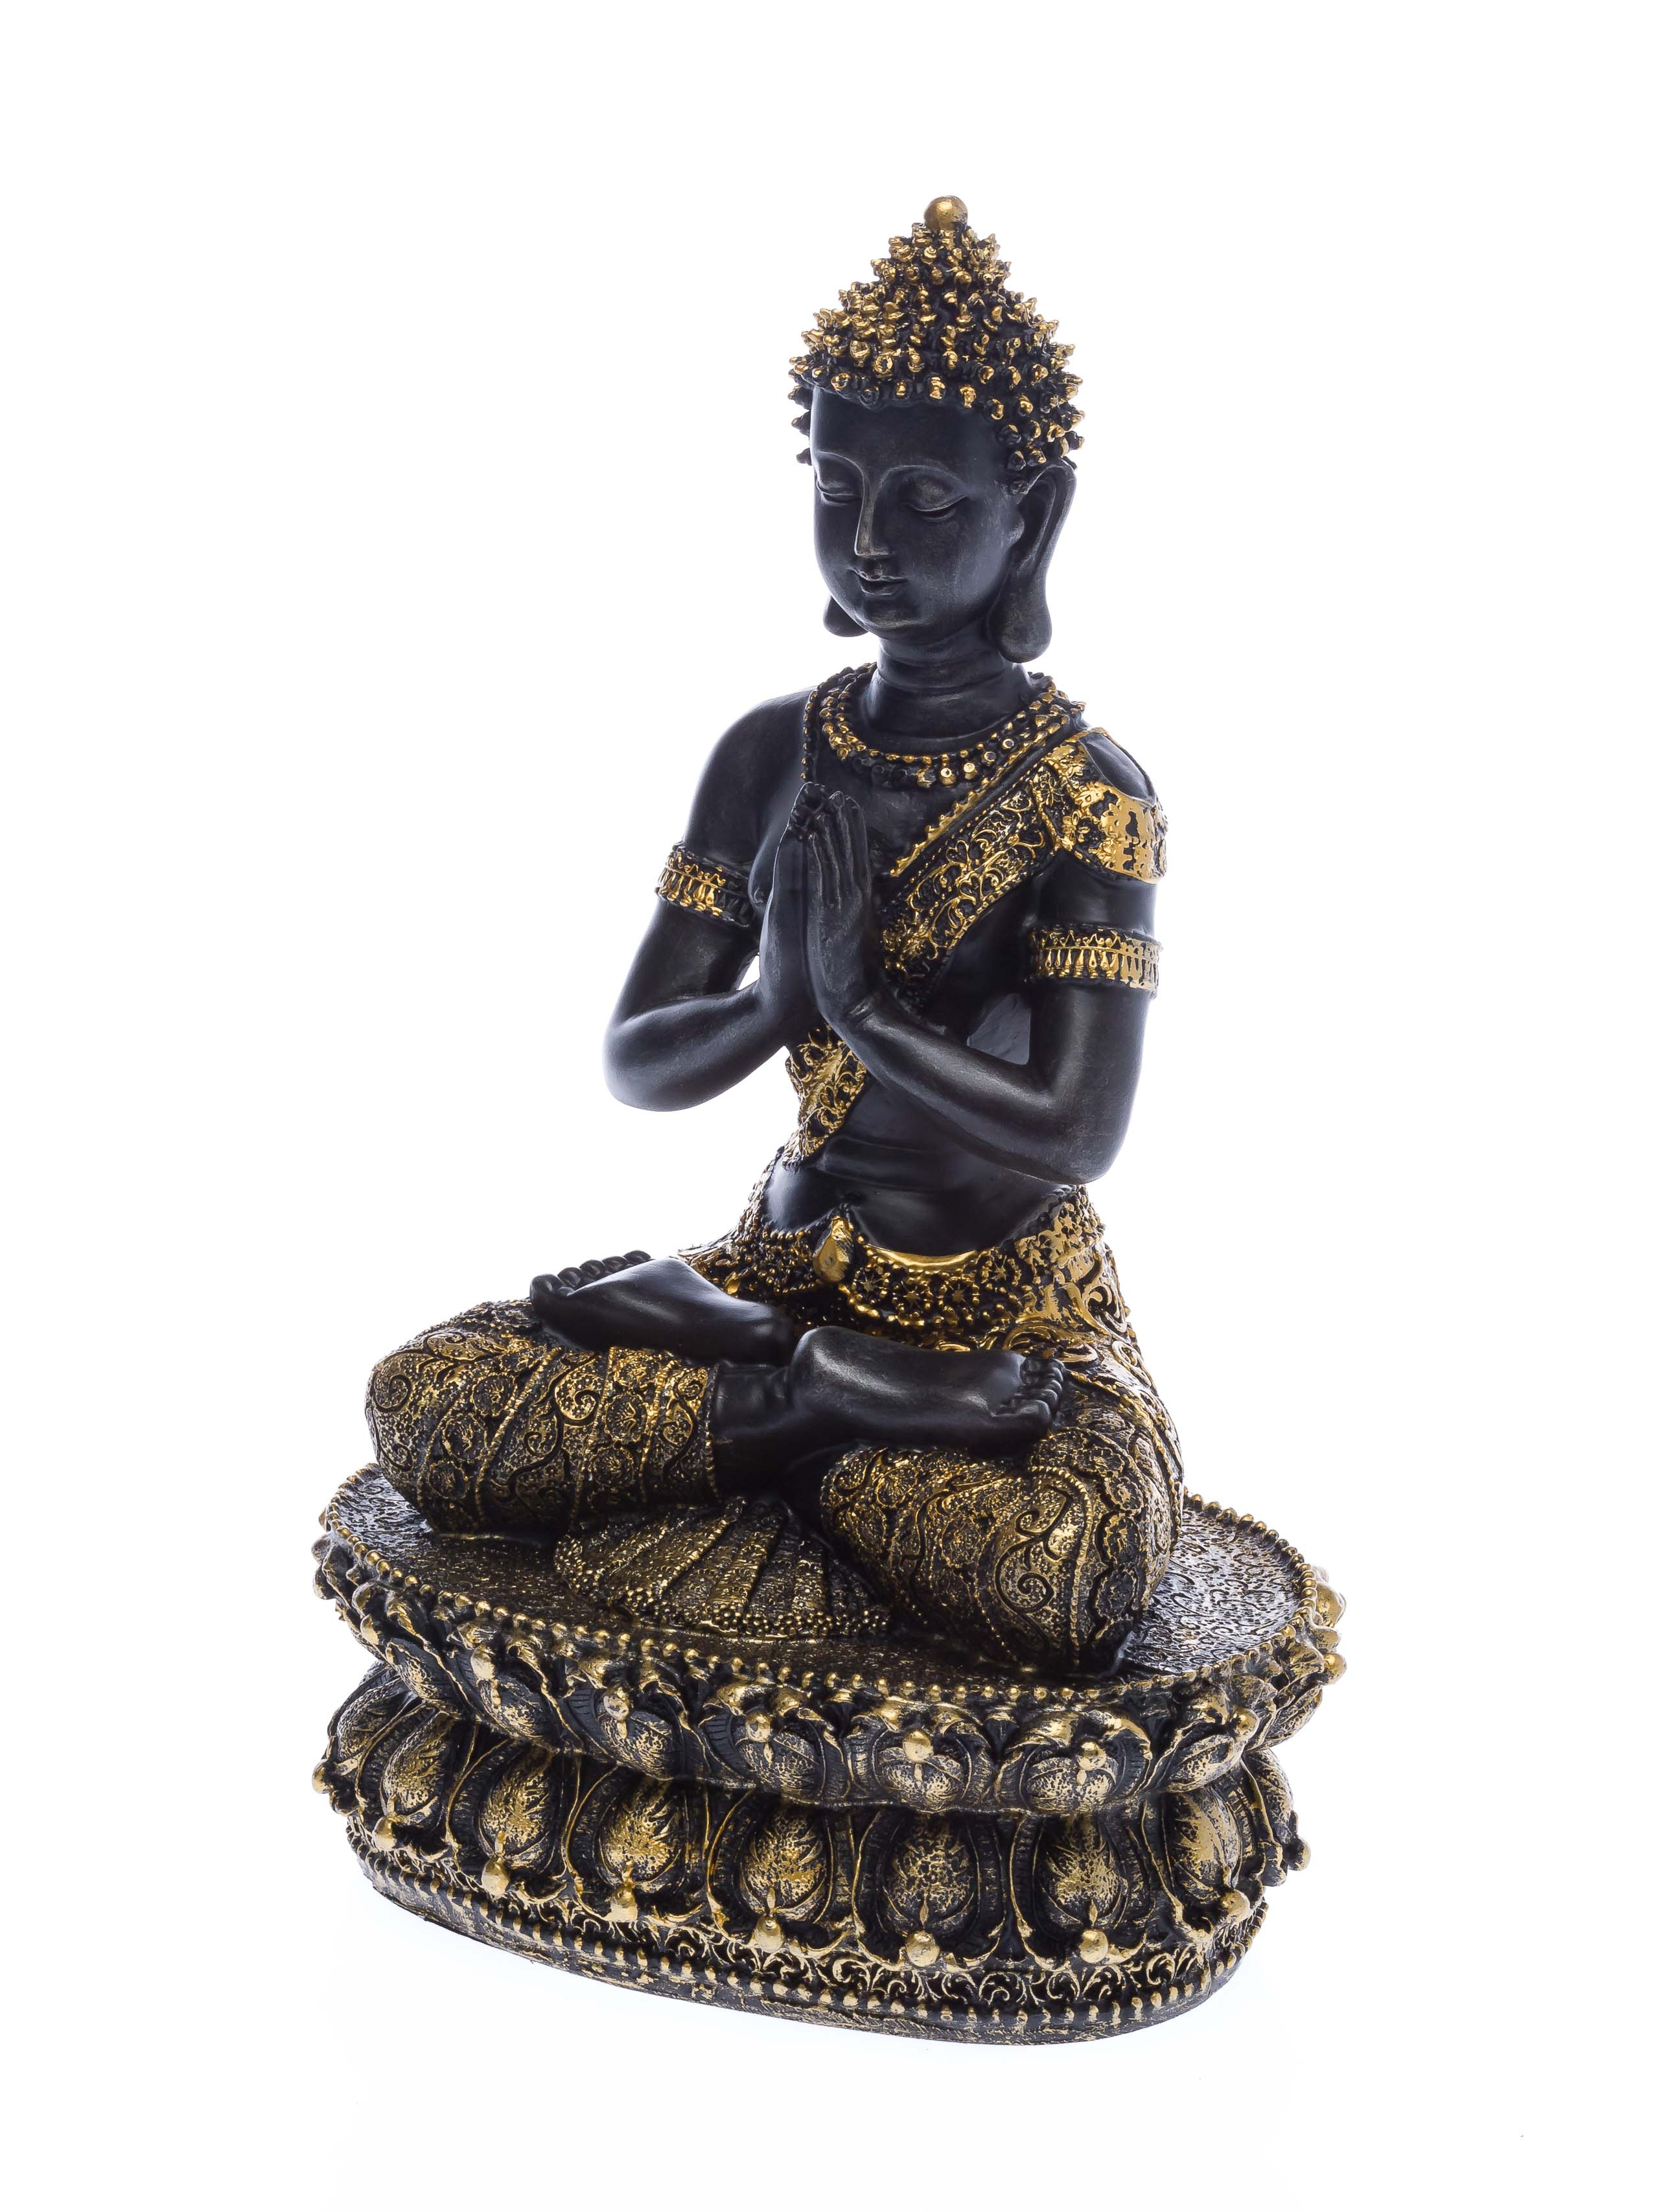 Statua Budda In Stile Antico Other Asian Antiques Asian Antiques